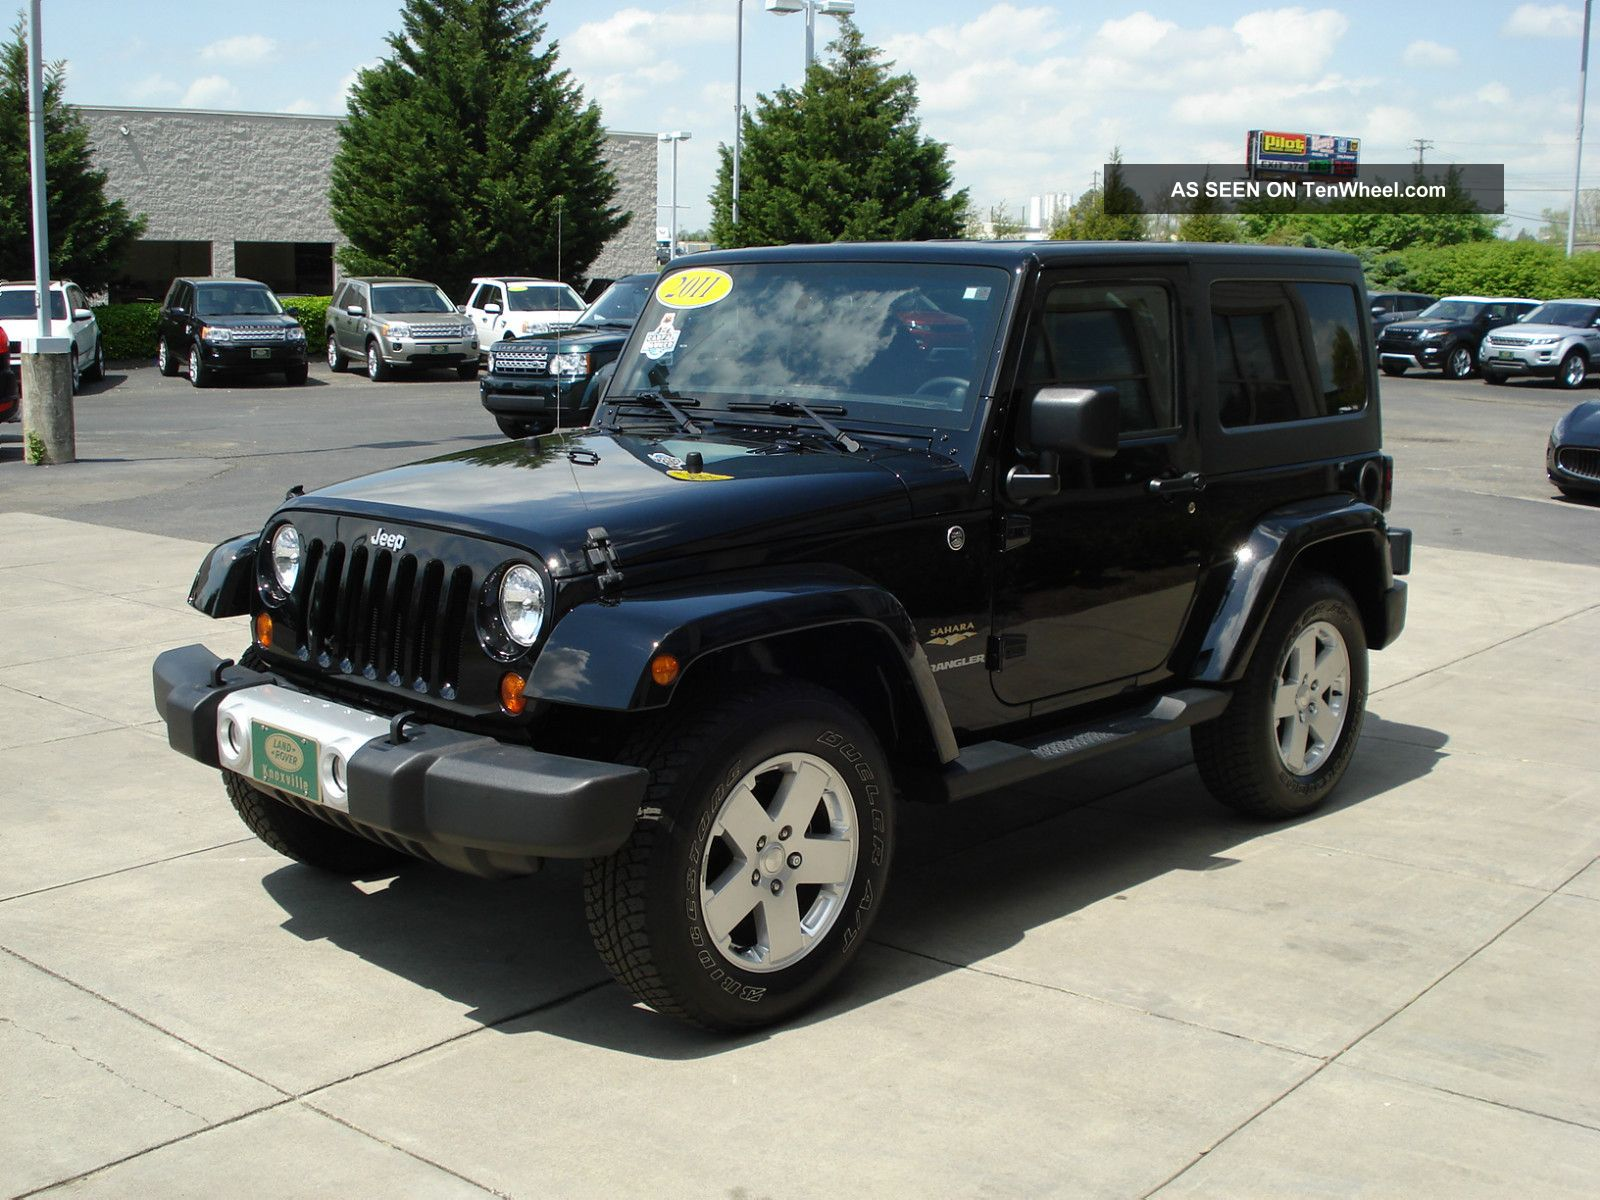 2011 jeep wrangler sahara sport utility 2 door 3 8l remote start xm. Black Bedroom Furniture Sets. Home Design Ideas